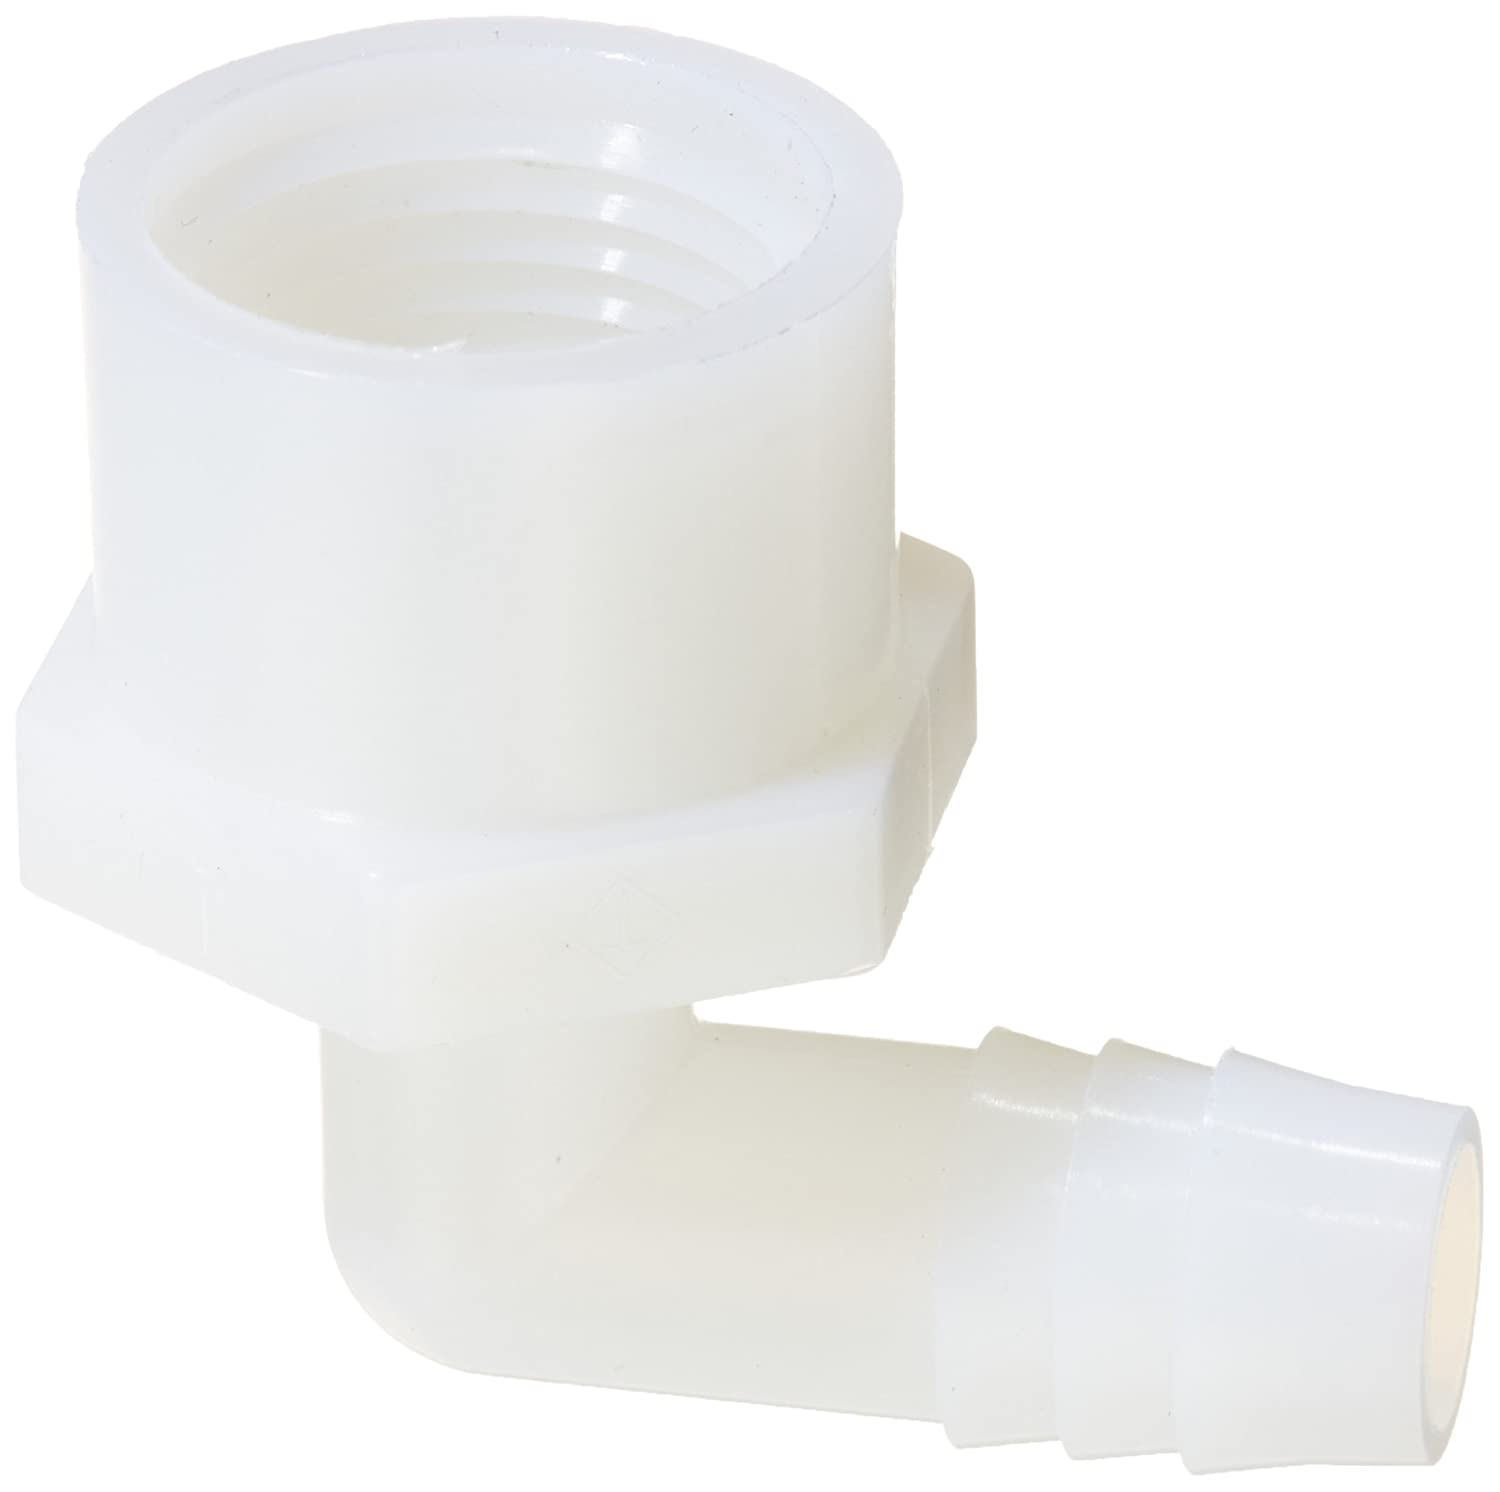 Parker Hannifin 329HB-8-8N-pk5 Par-Barb Male Elbow Fitting Pack of 5 1//2 Hose Barb x 1//2 Male NPT White 90 Degree Angle Nylon